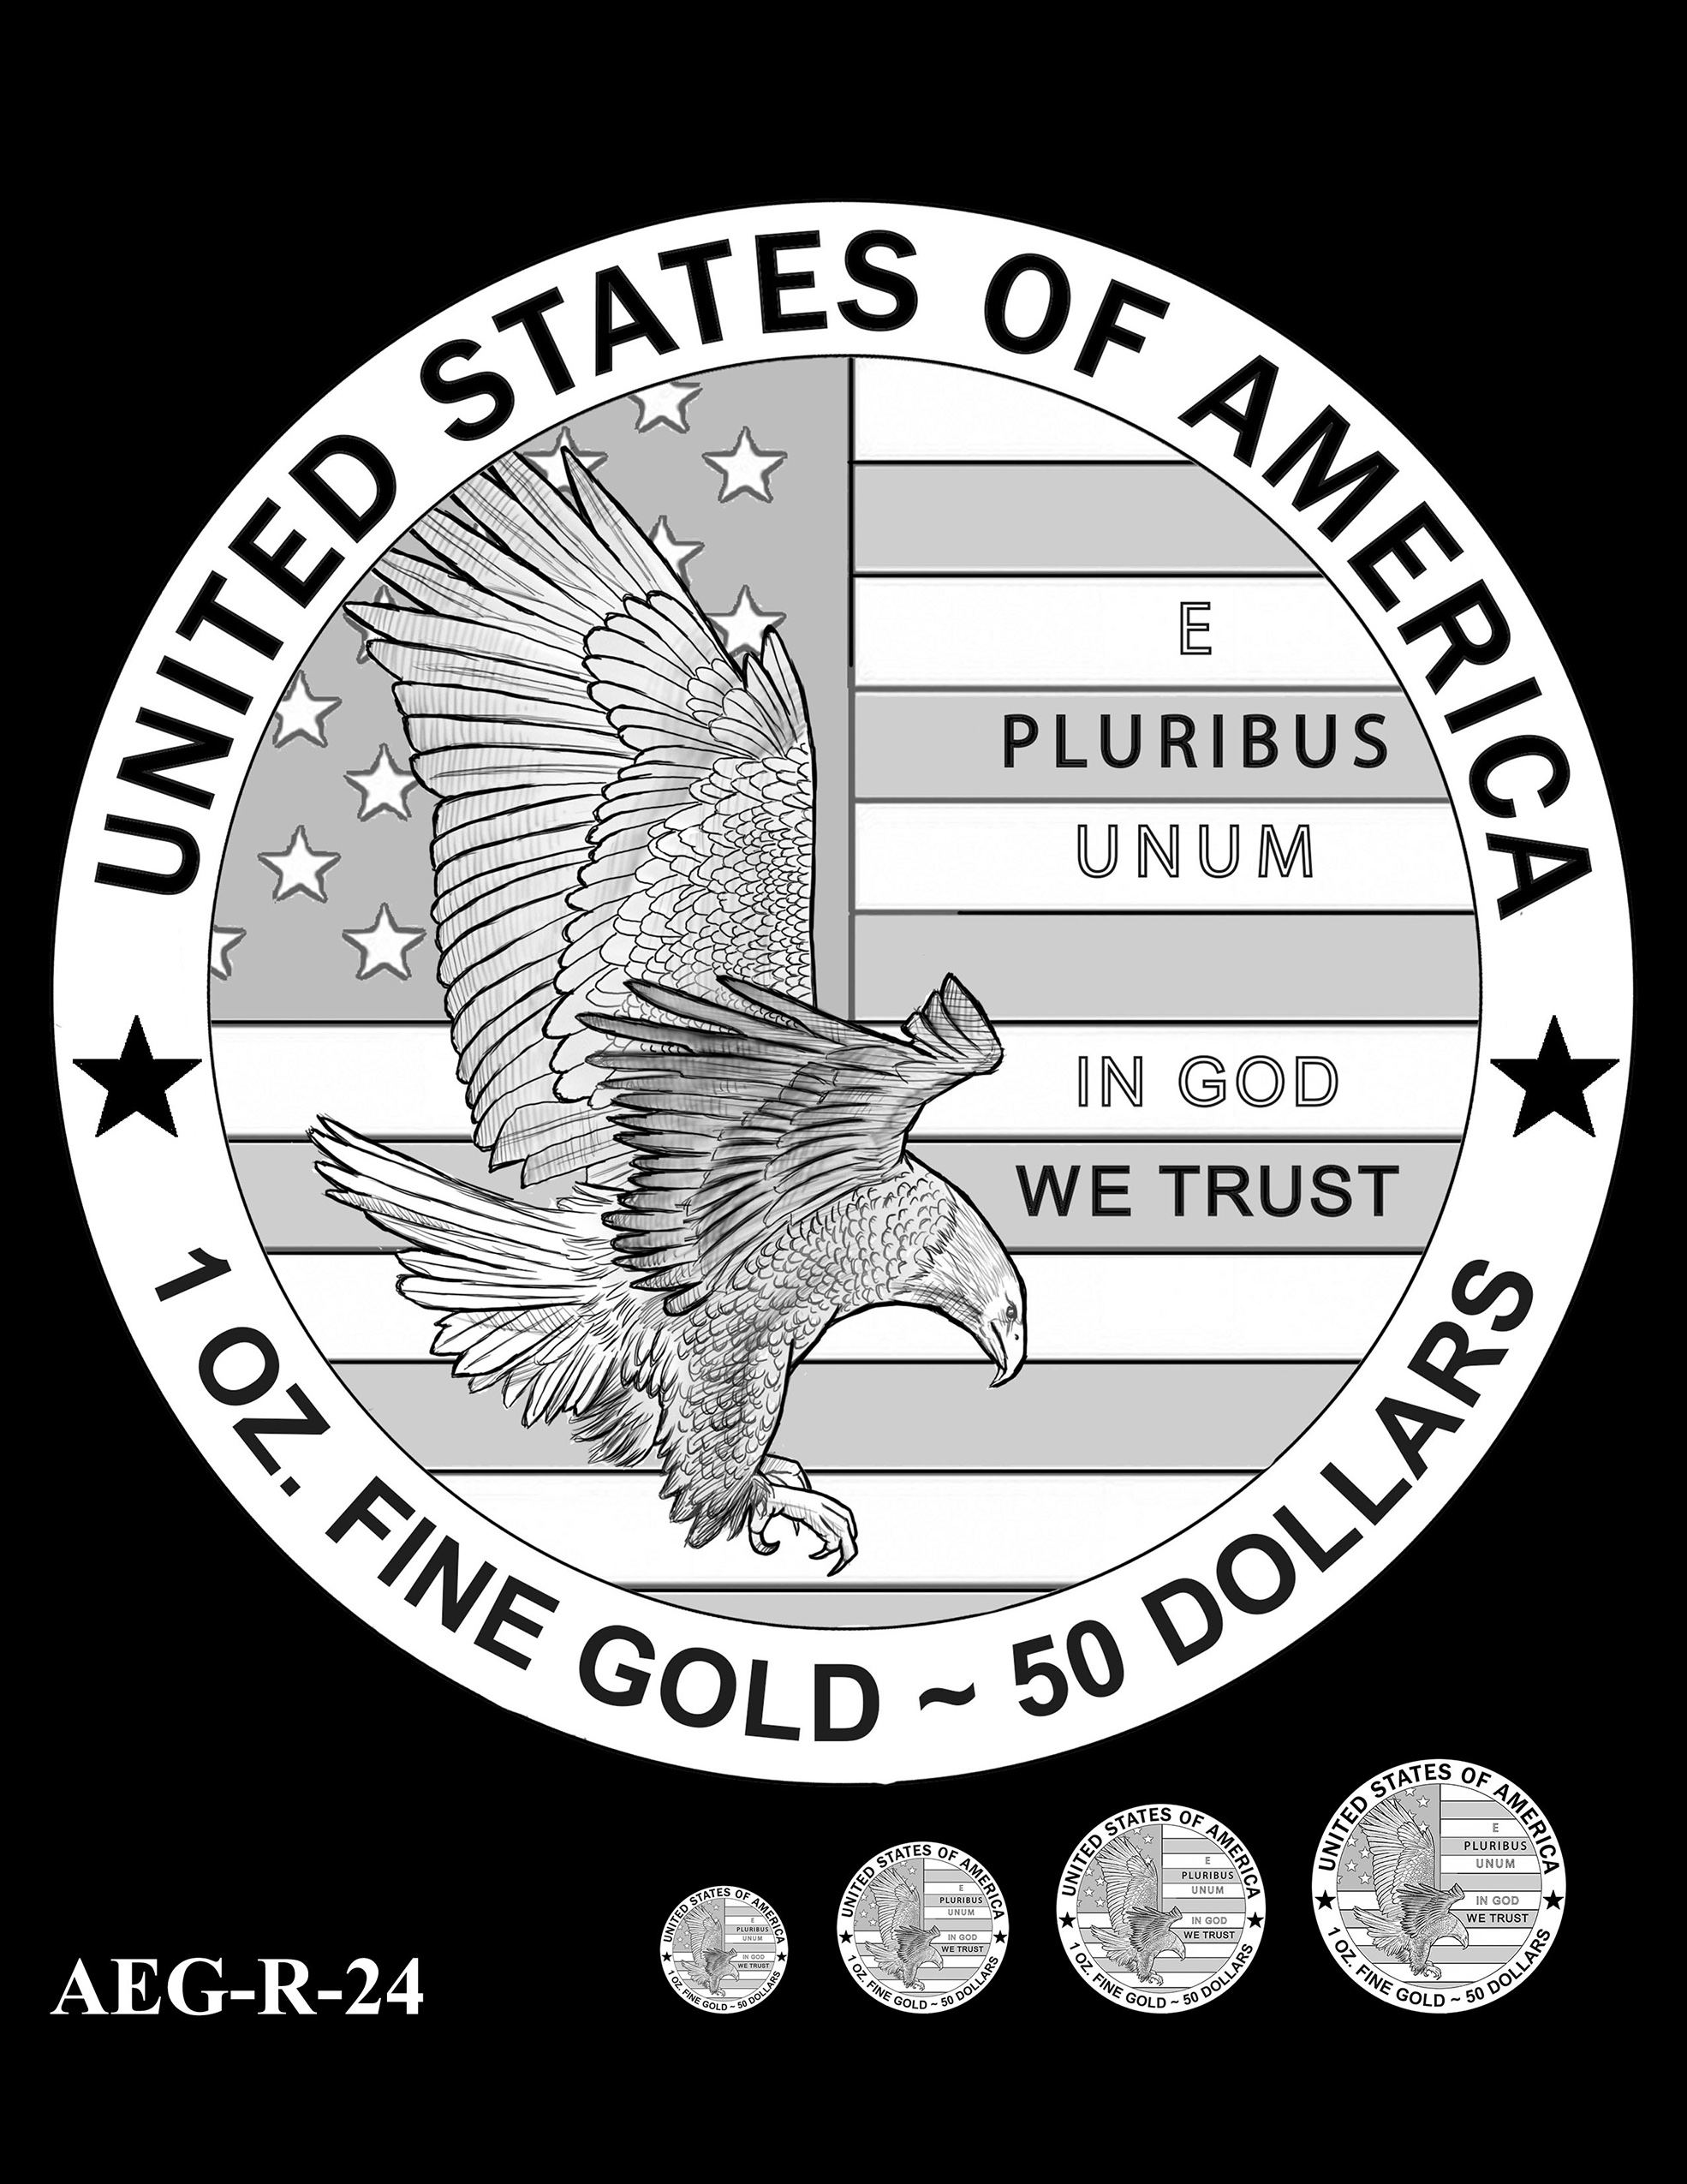 AEG-R-24 -- American Eagle Proof and Bullion Gold Coin - Reverse